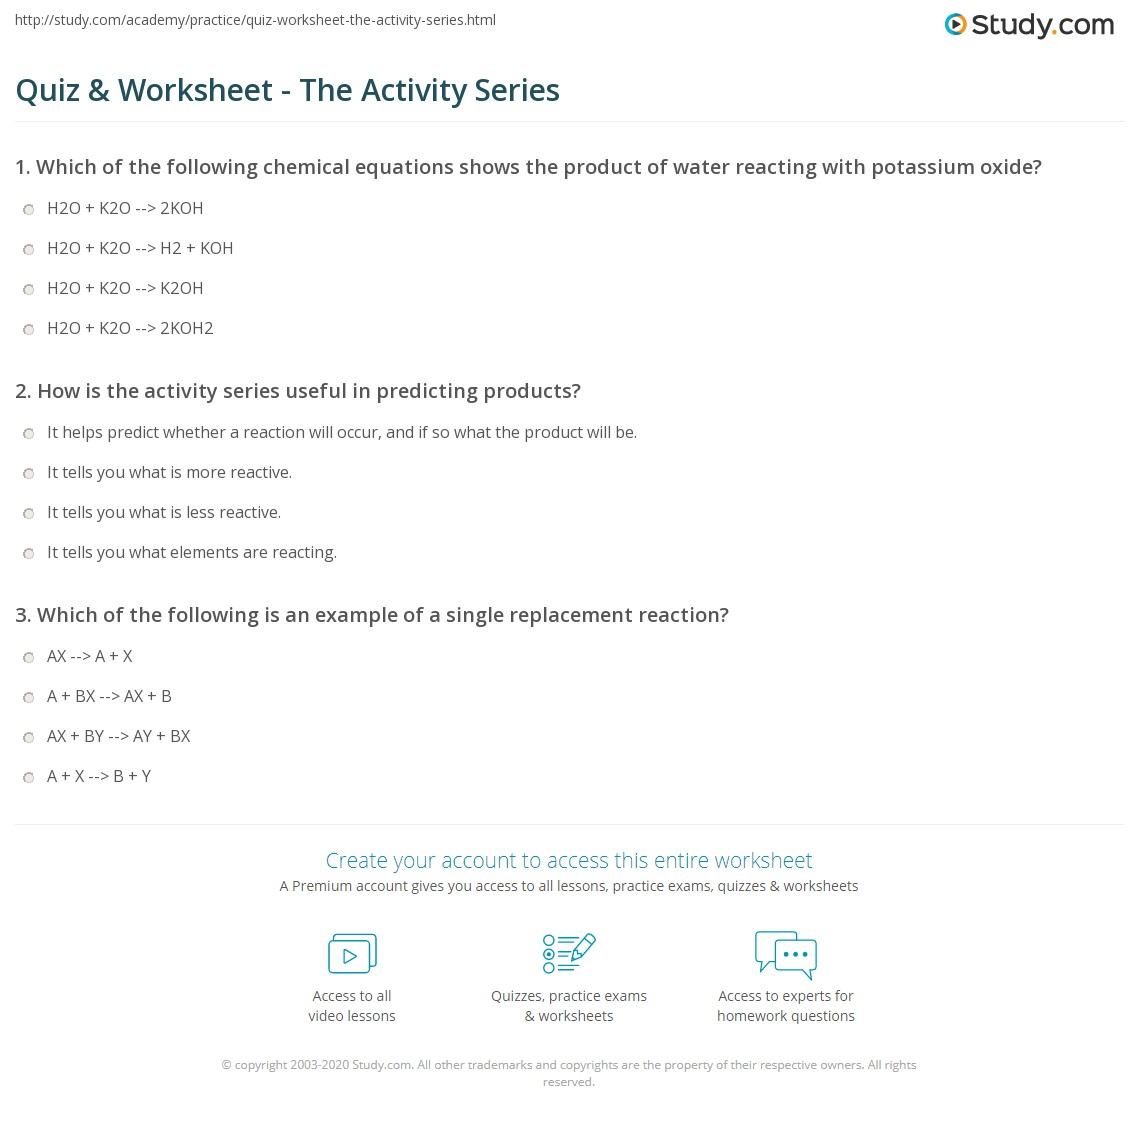 Aldiablosus  Surprising Quiz Amp Worksheet  The Activity Series  Studycom With Handsome Print The Activity Series Predicting Products Of Single Displacement Reactions Worksheet With Easy On The Eye Th Grade Ela Worksheets Also Addition Worksheets St Grade In Addition Metric Conversion Practice Worksheet And Heat Calculations Worksheet Answers As Well As Naming Organic Compounds Worksheet Additionally Spelling Worksheet From Studycom With Aldiablosus  Handsome Quiz Amp Worksheet  The Activity Series  Studycom With Easy On The Eye Print The Activity Series Predicting Products Of Single Displacement Reactions Worksheet And Surprising Th Grade Ela Worksheets Also Addition Worksheets St Grade In Addition Metric Conversion Practice Worksheet From Studycom